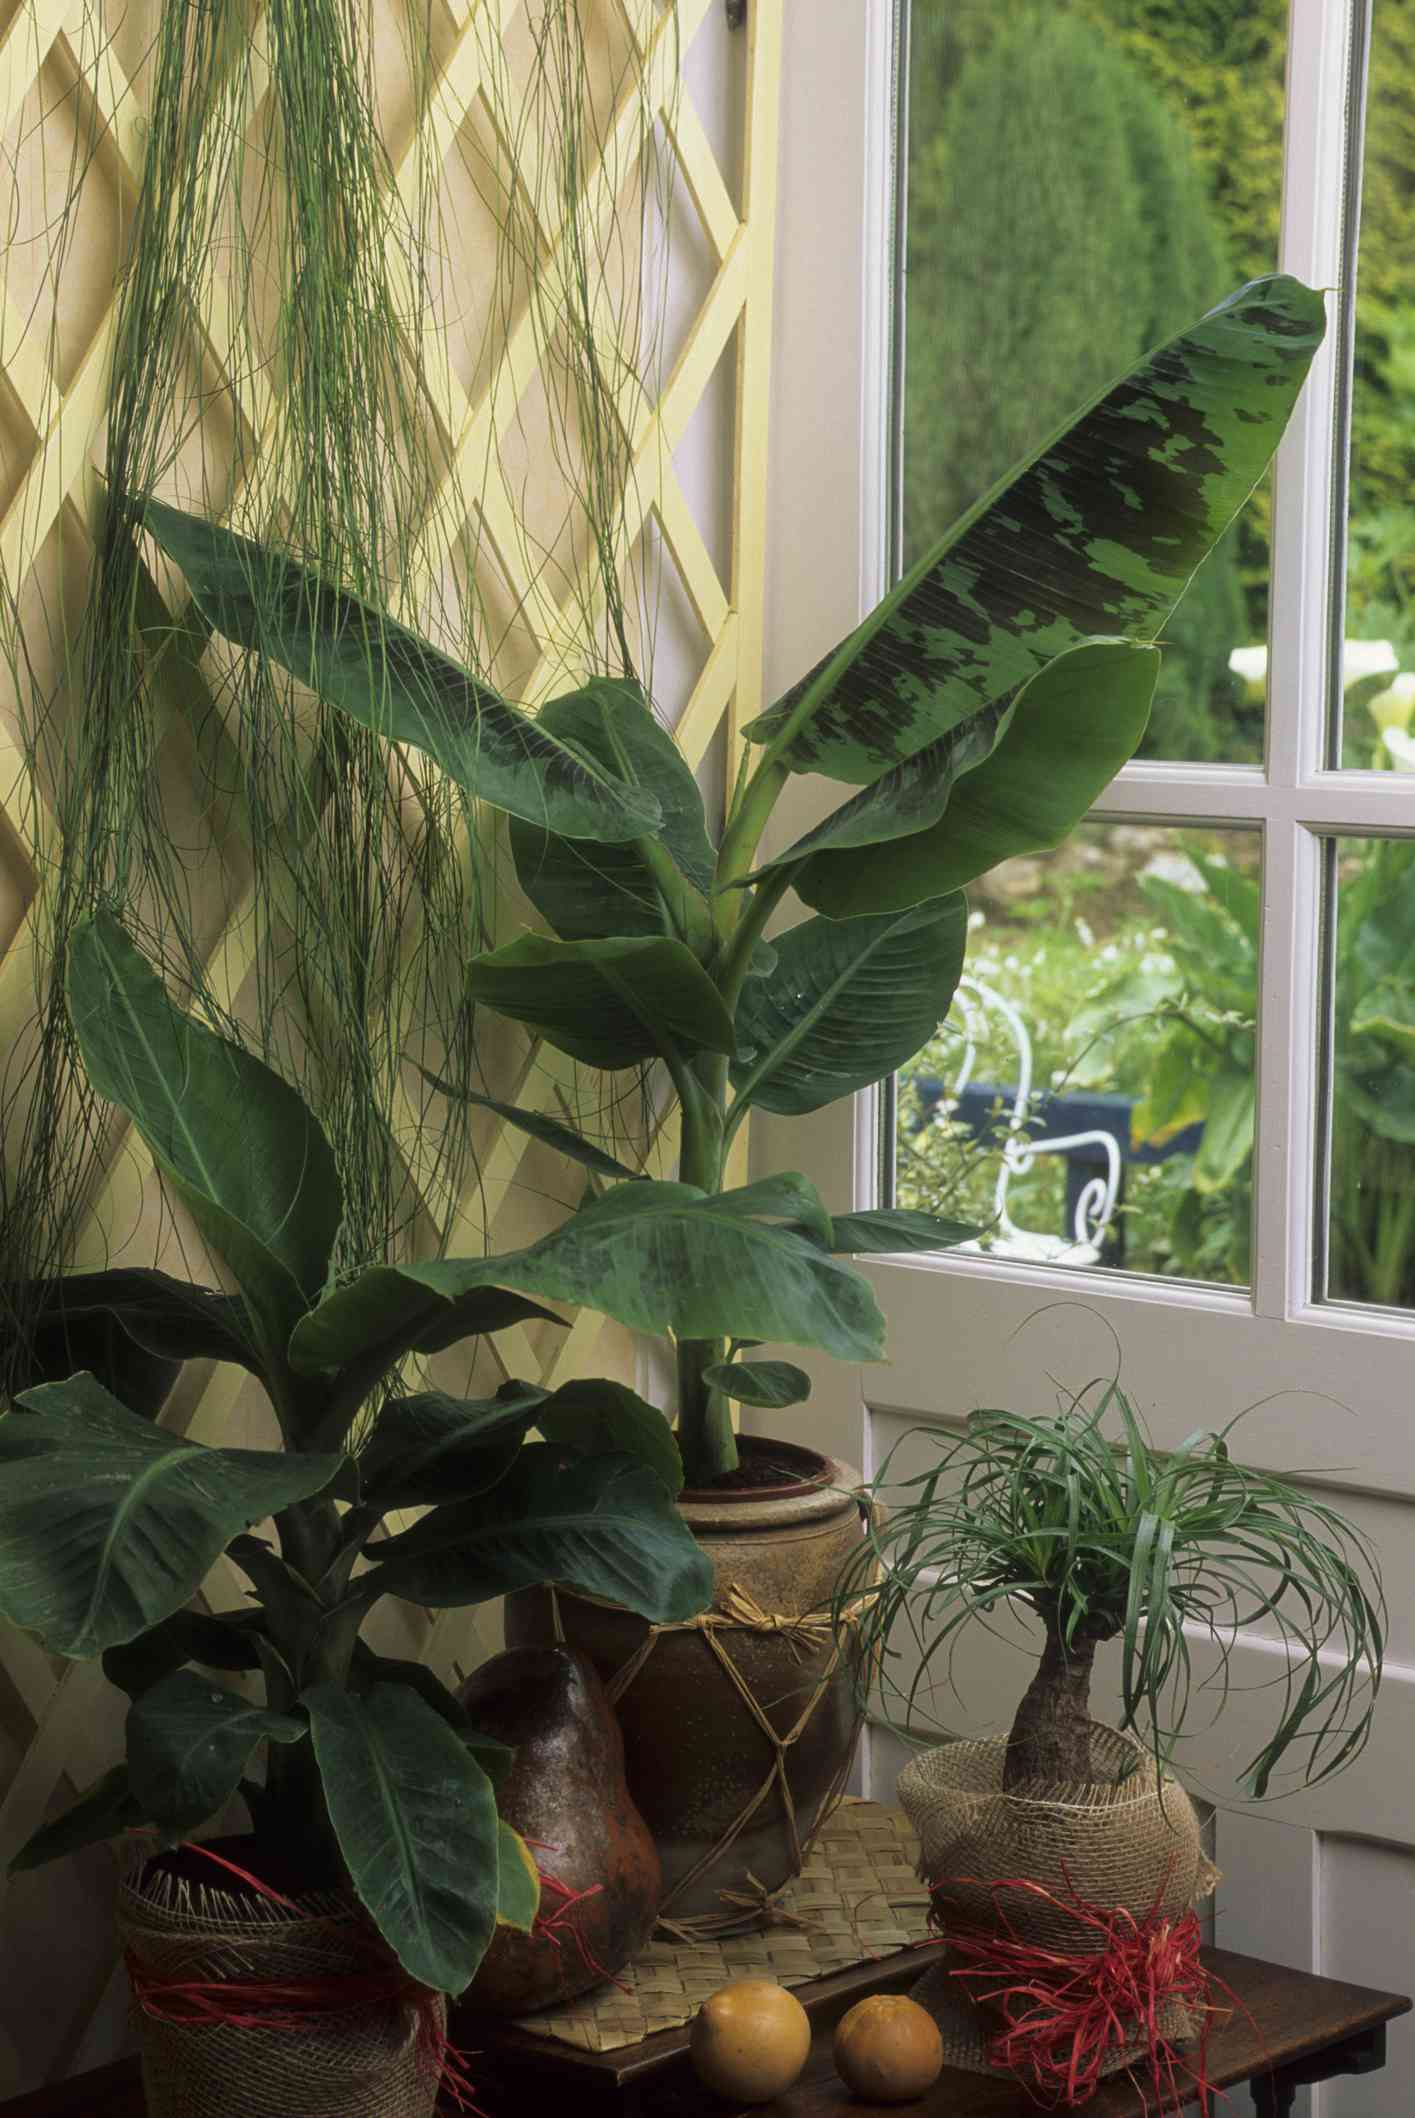 banana leaf plant in pot near window with other houseplants